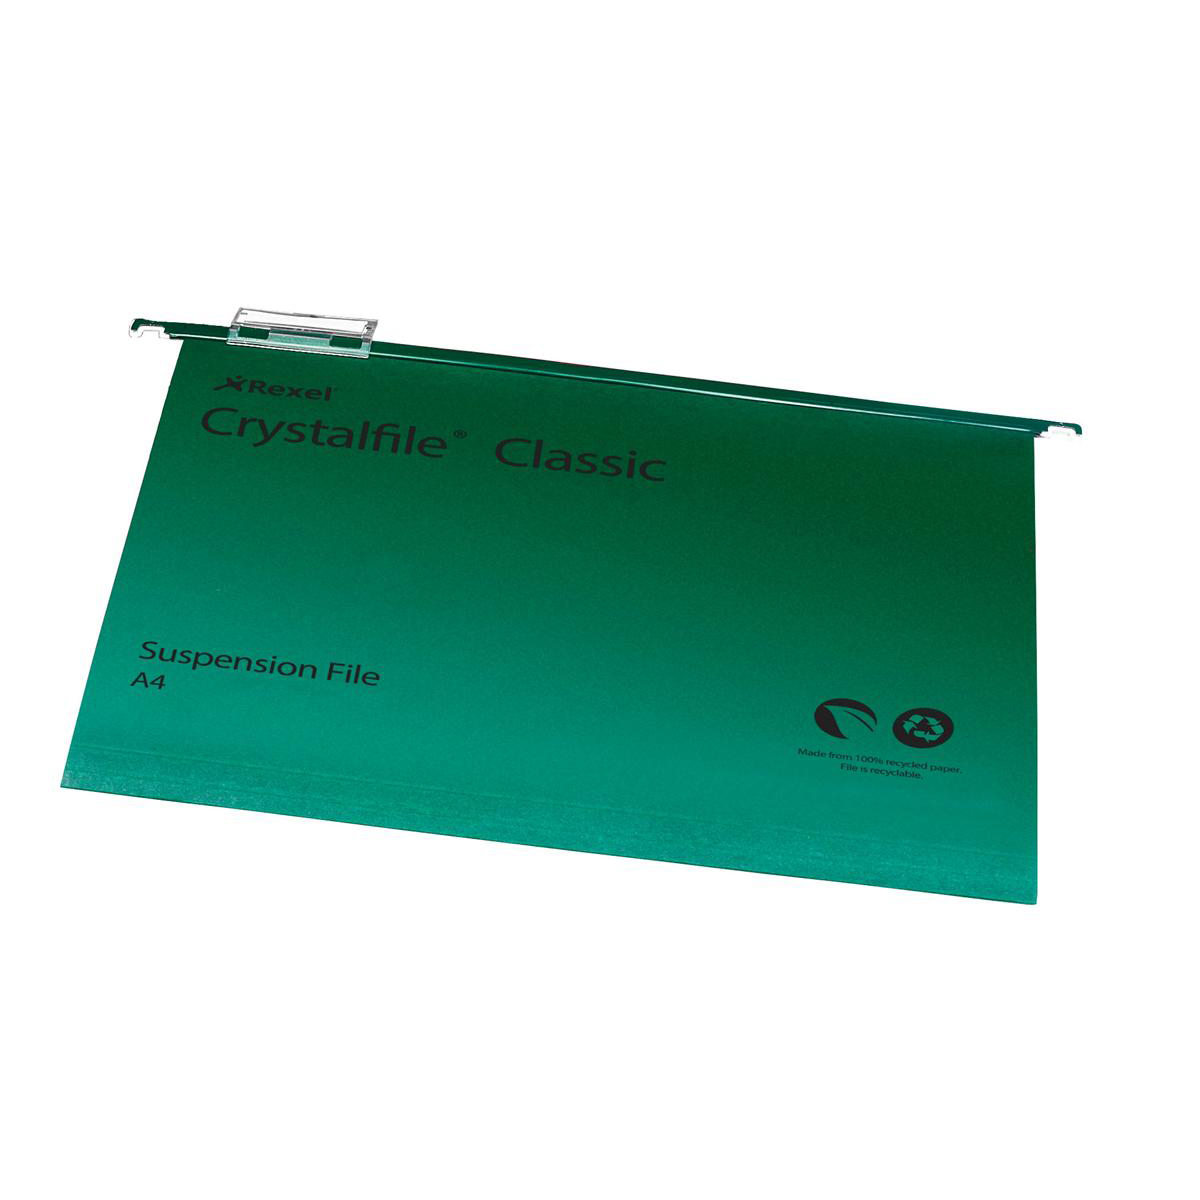 Rexel Crystalfile Classic Suspension File Manilla 15mm V-base 230gsm A4 Green Ref 78045 Pack 50